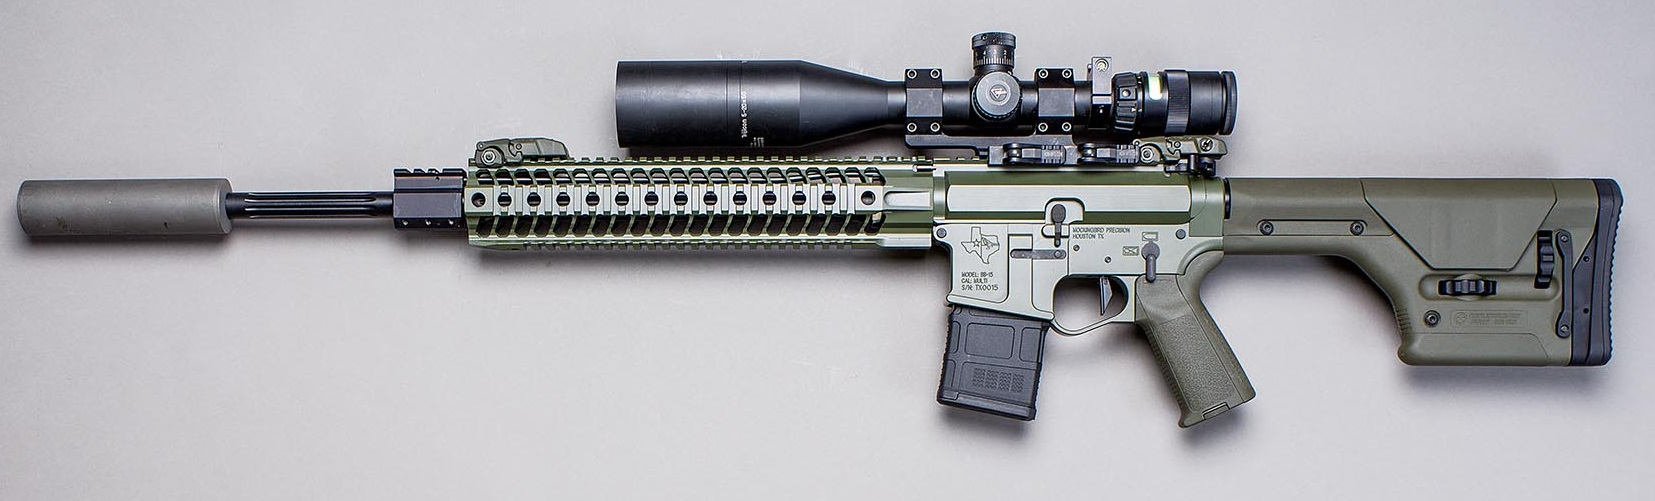 Mockingbird Precision BB-15 5.56 DMR